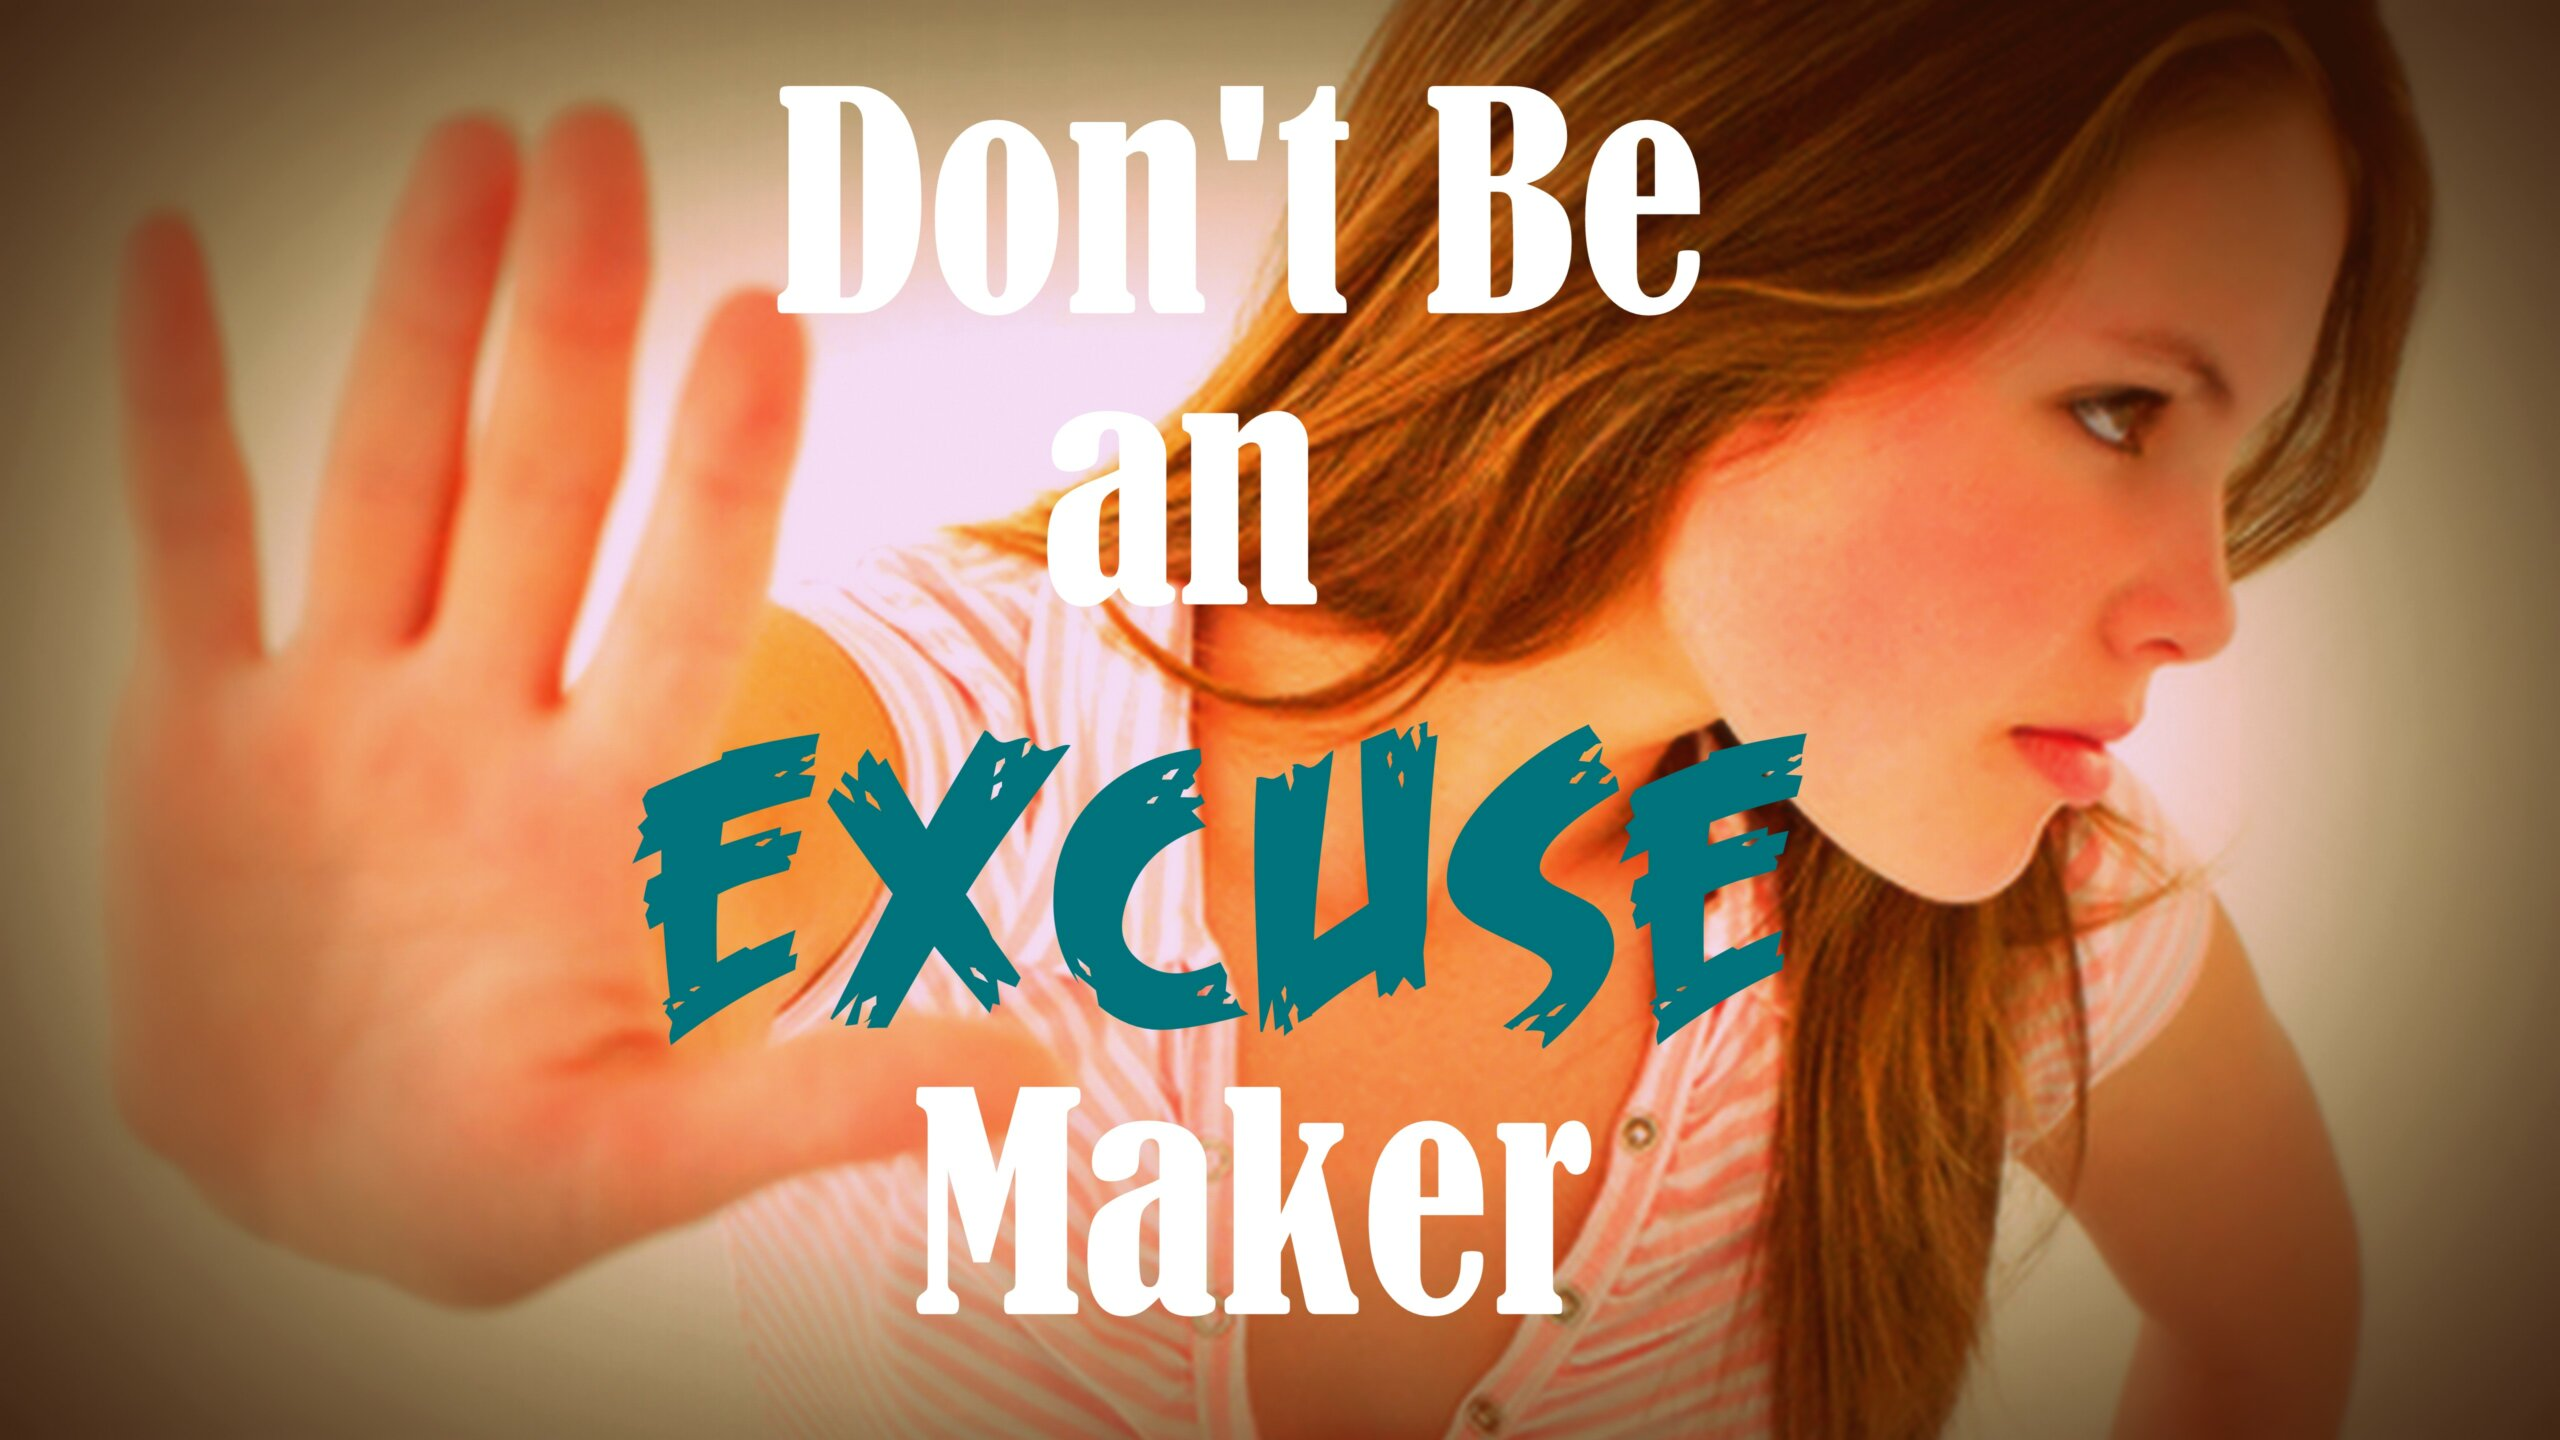 Don't Be an Excuse Maker